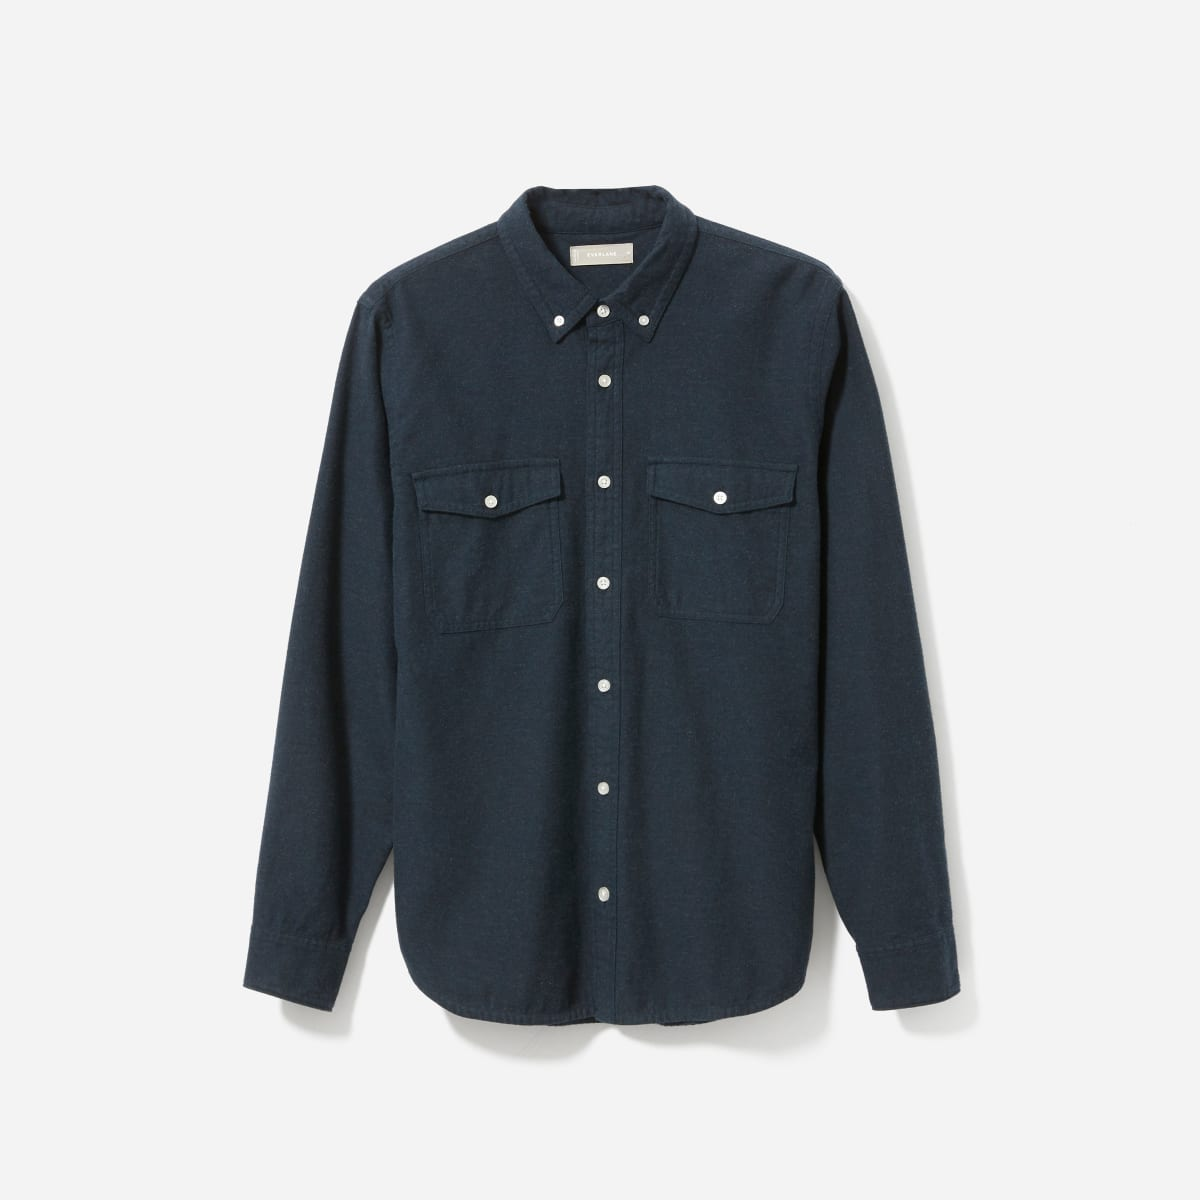 Everlane Modern Flannel Shirt